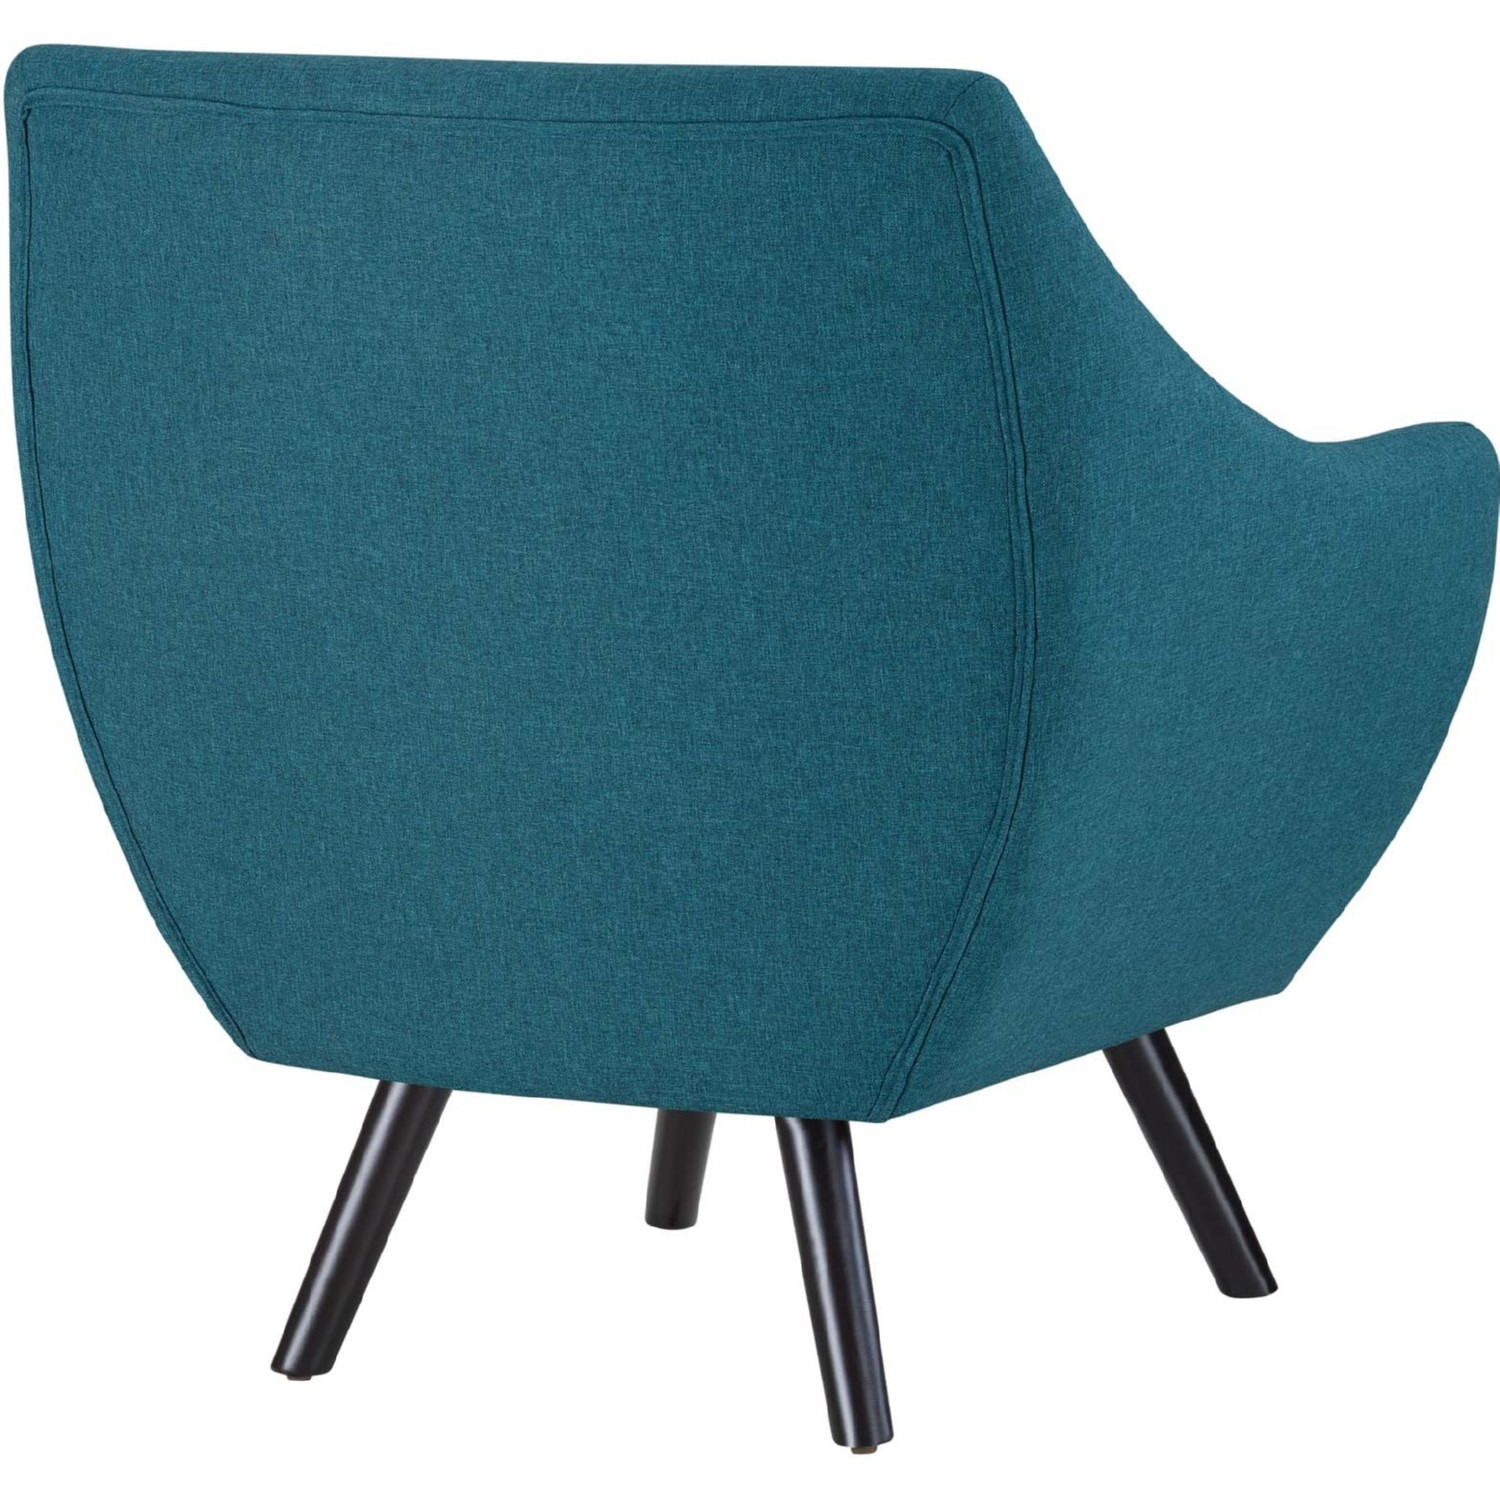 Armchair In Teal Fabric W/ Tufted Buttons - image-3